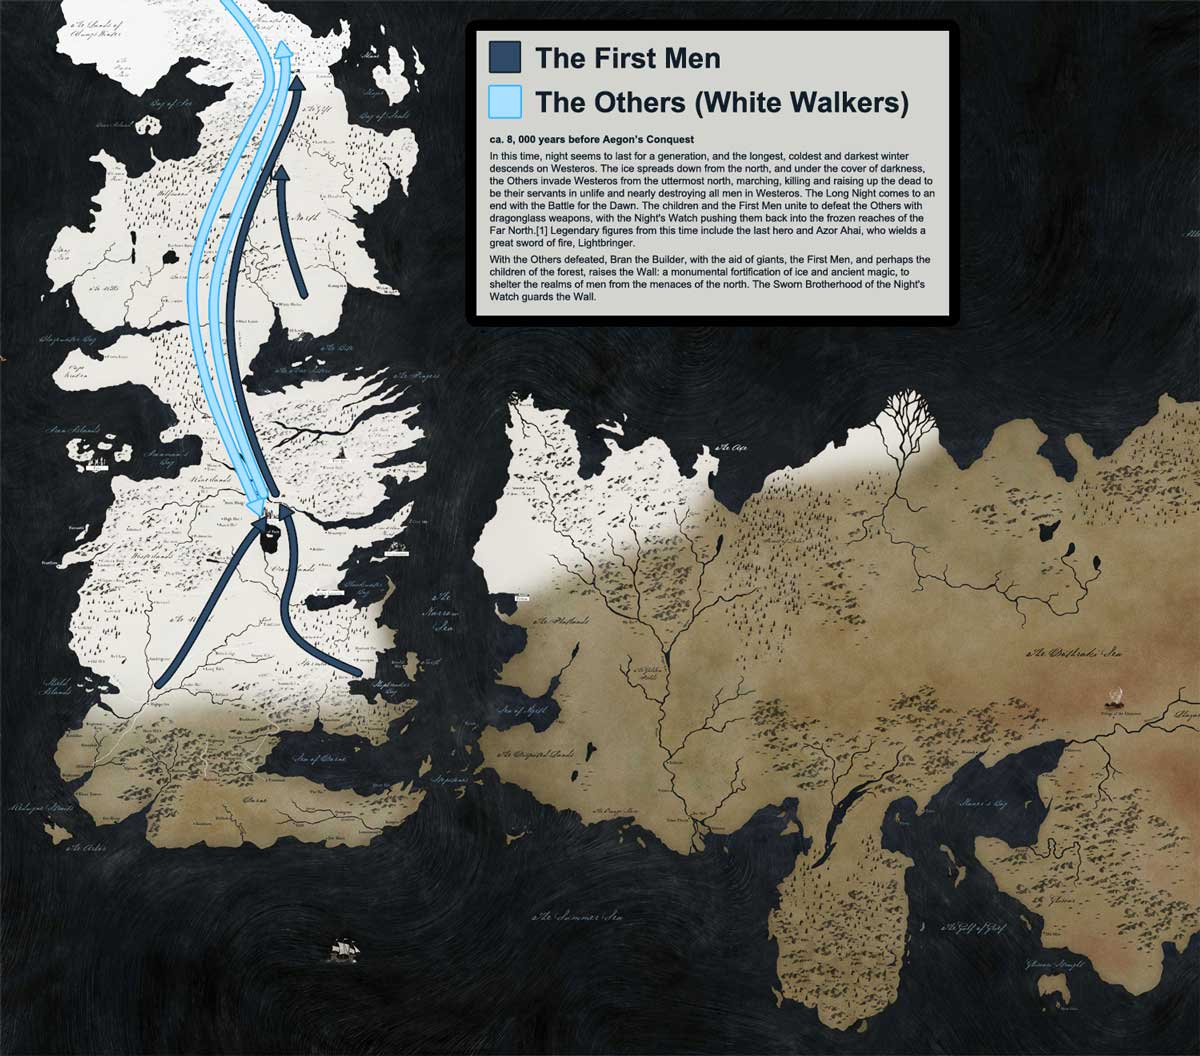 The Entire History of Westeros Explained in 9 Maps